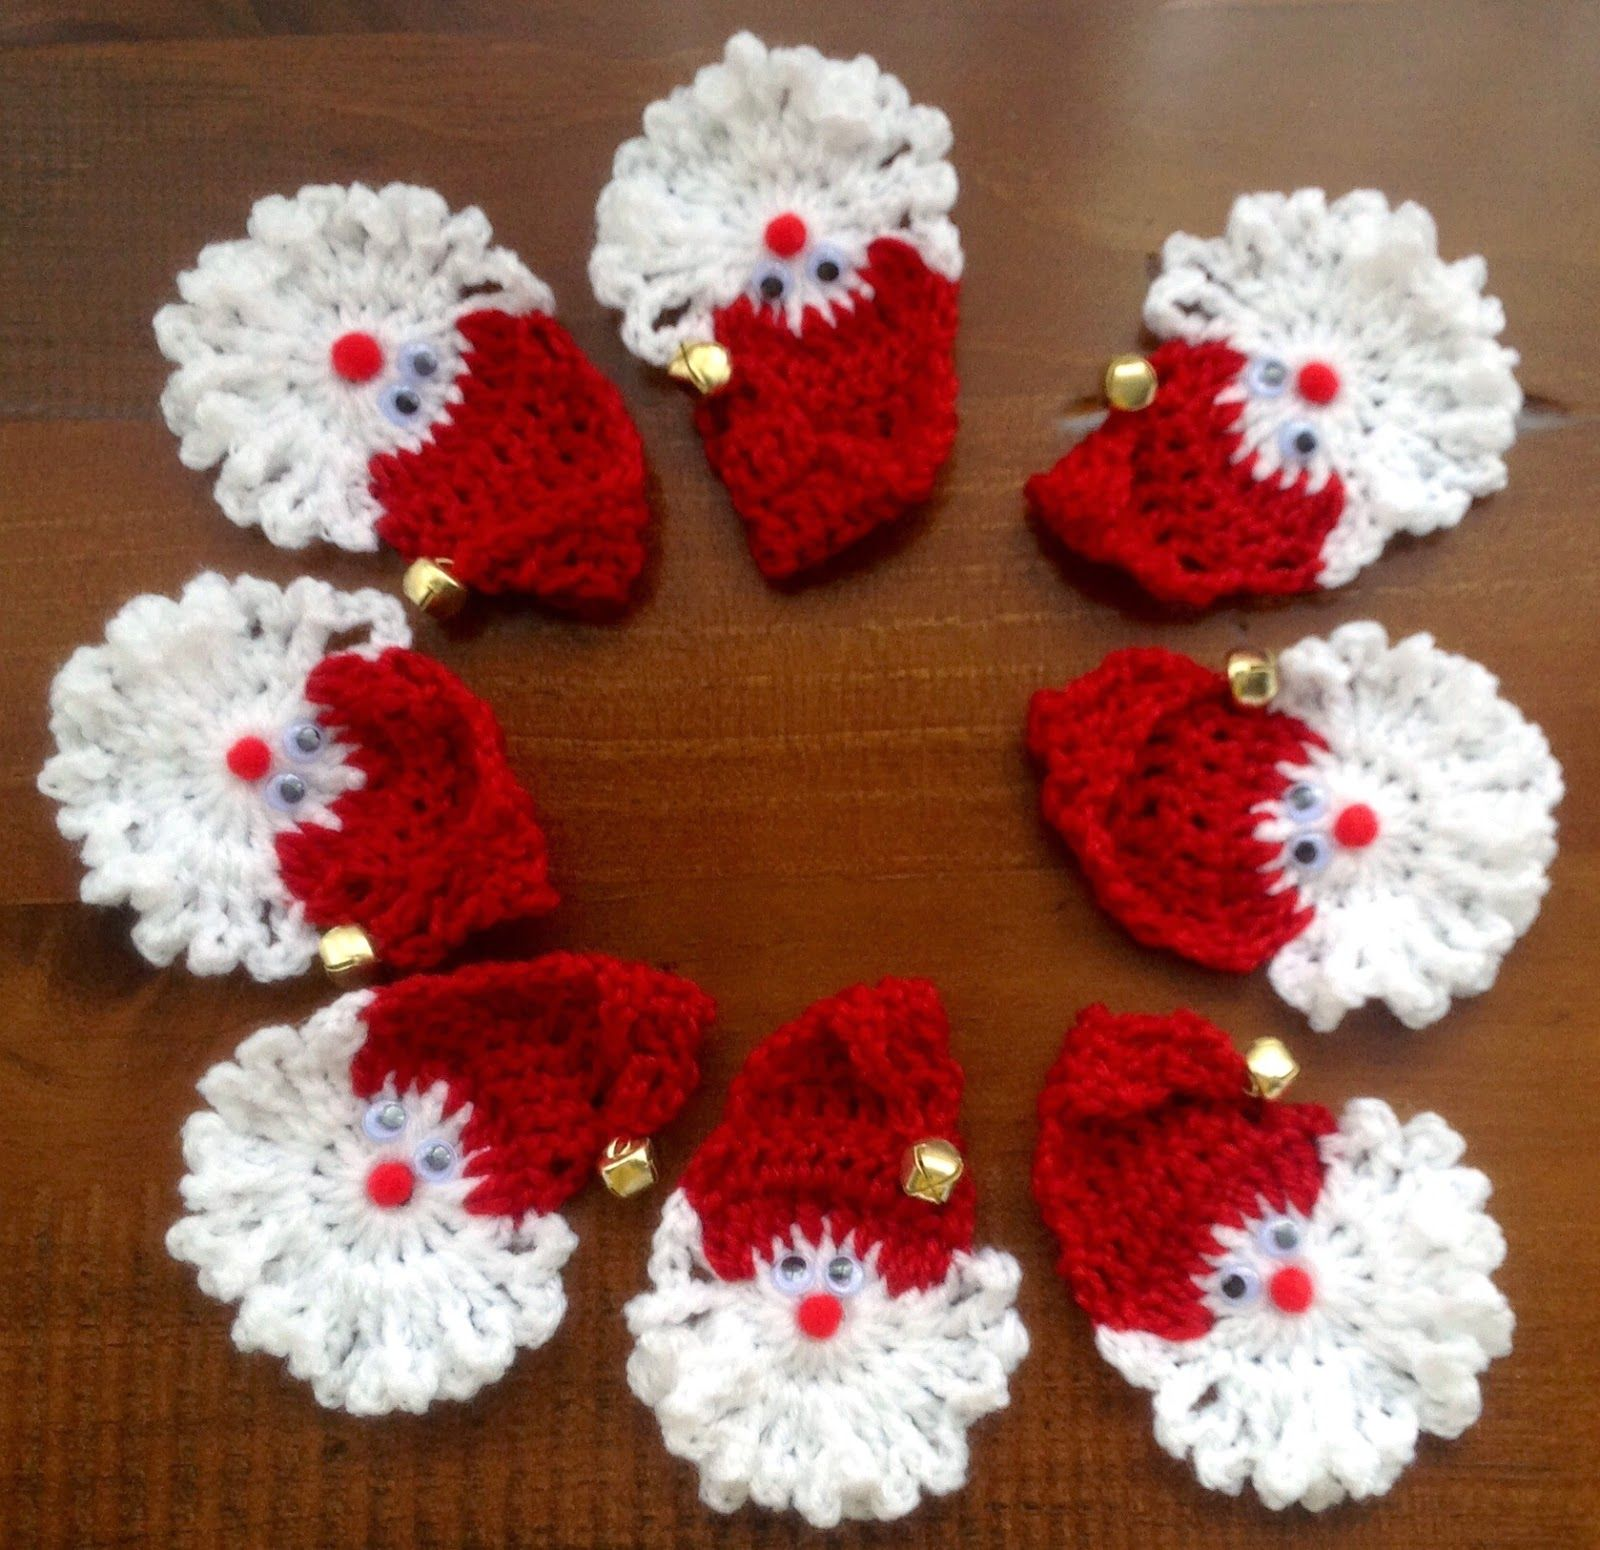 Butterz my xmas in july present is open crotchet pinterest to add to my stockings and bells i have made santa face badges all i need to do is add a pin on the back they are quick easy to mak bankloansurffo Image collections